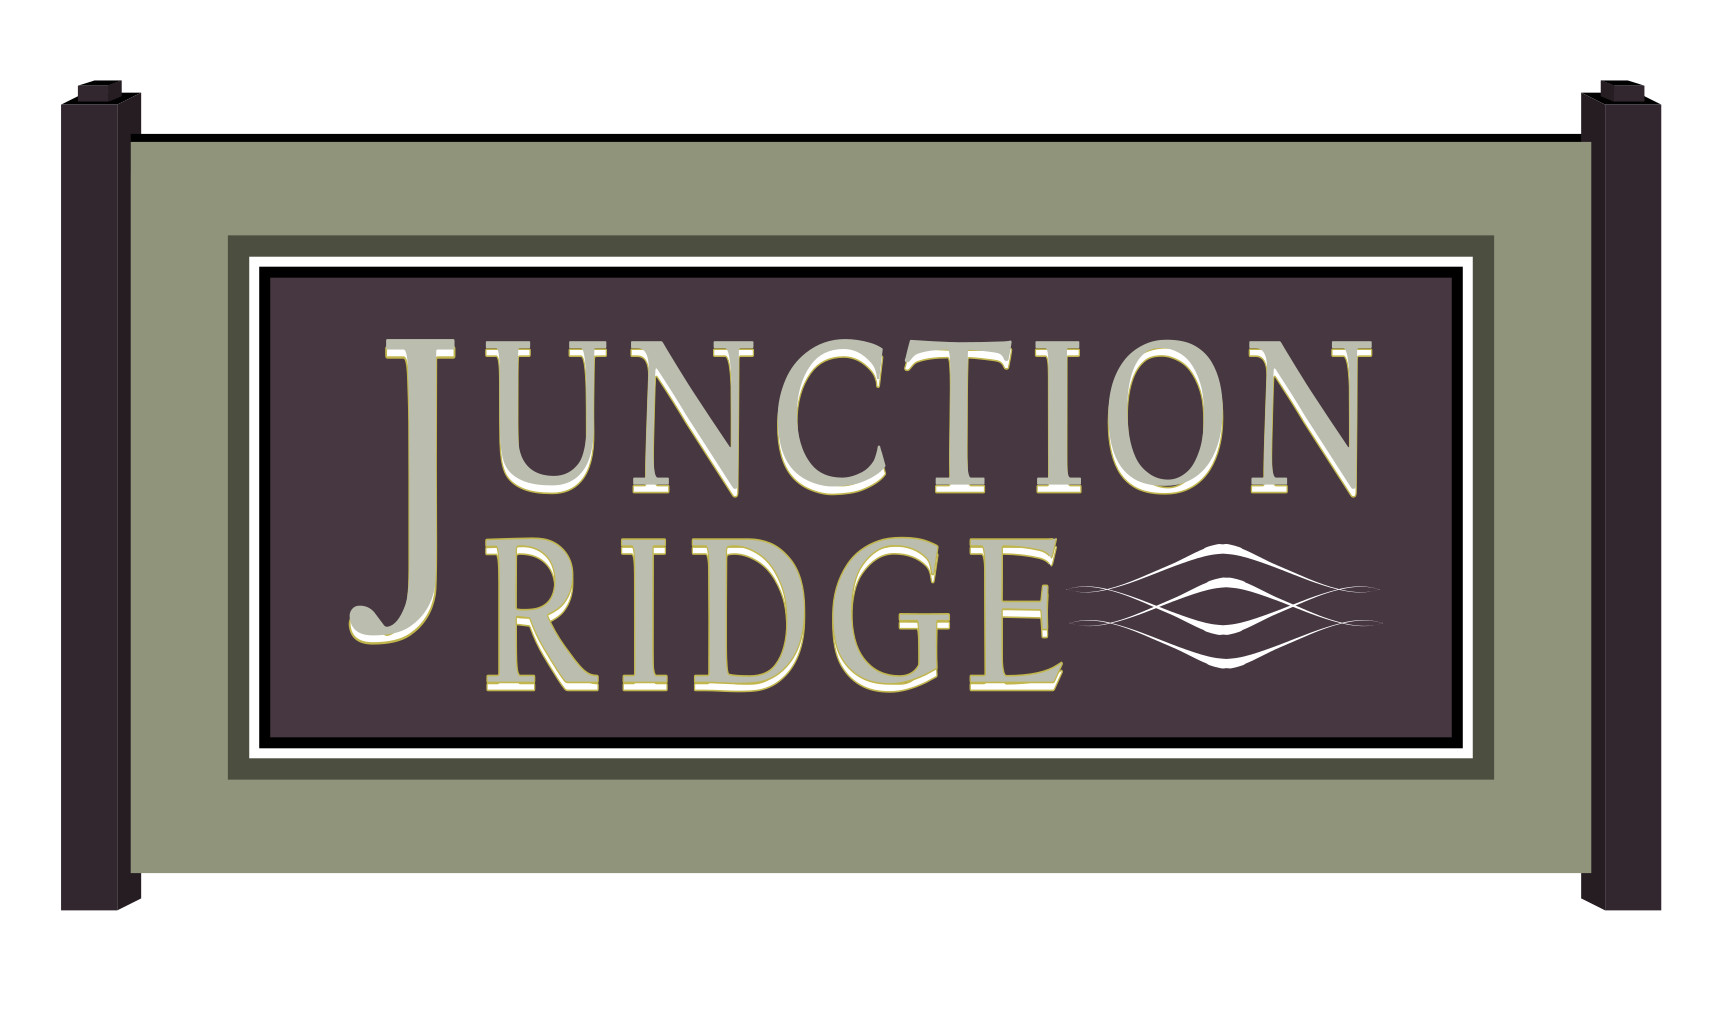 Madison's Junction Ridge Neighborhood